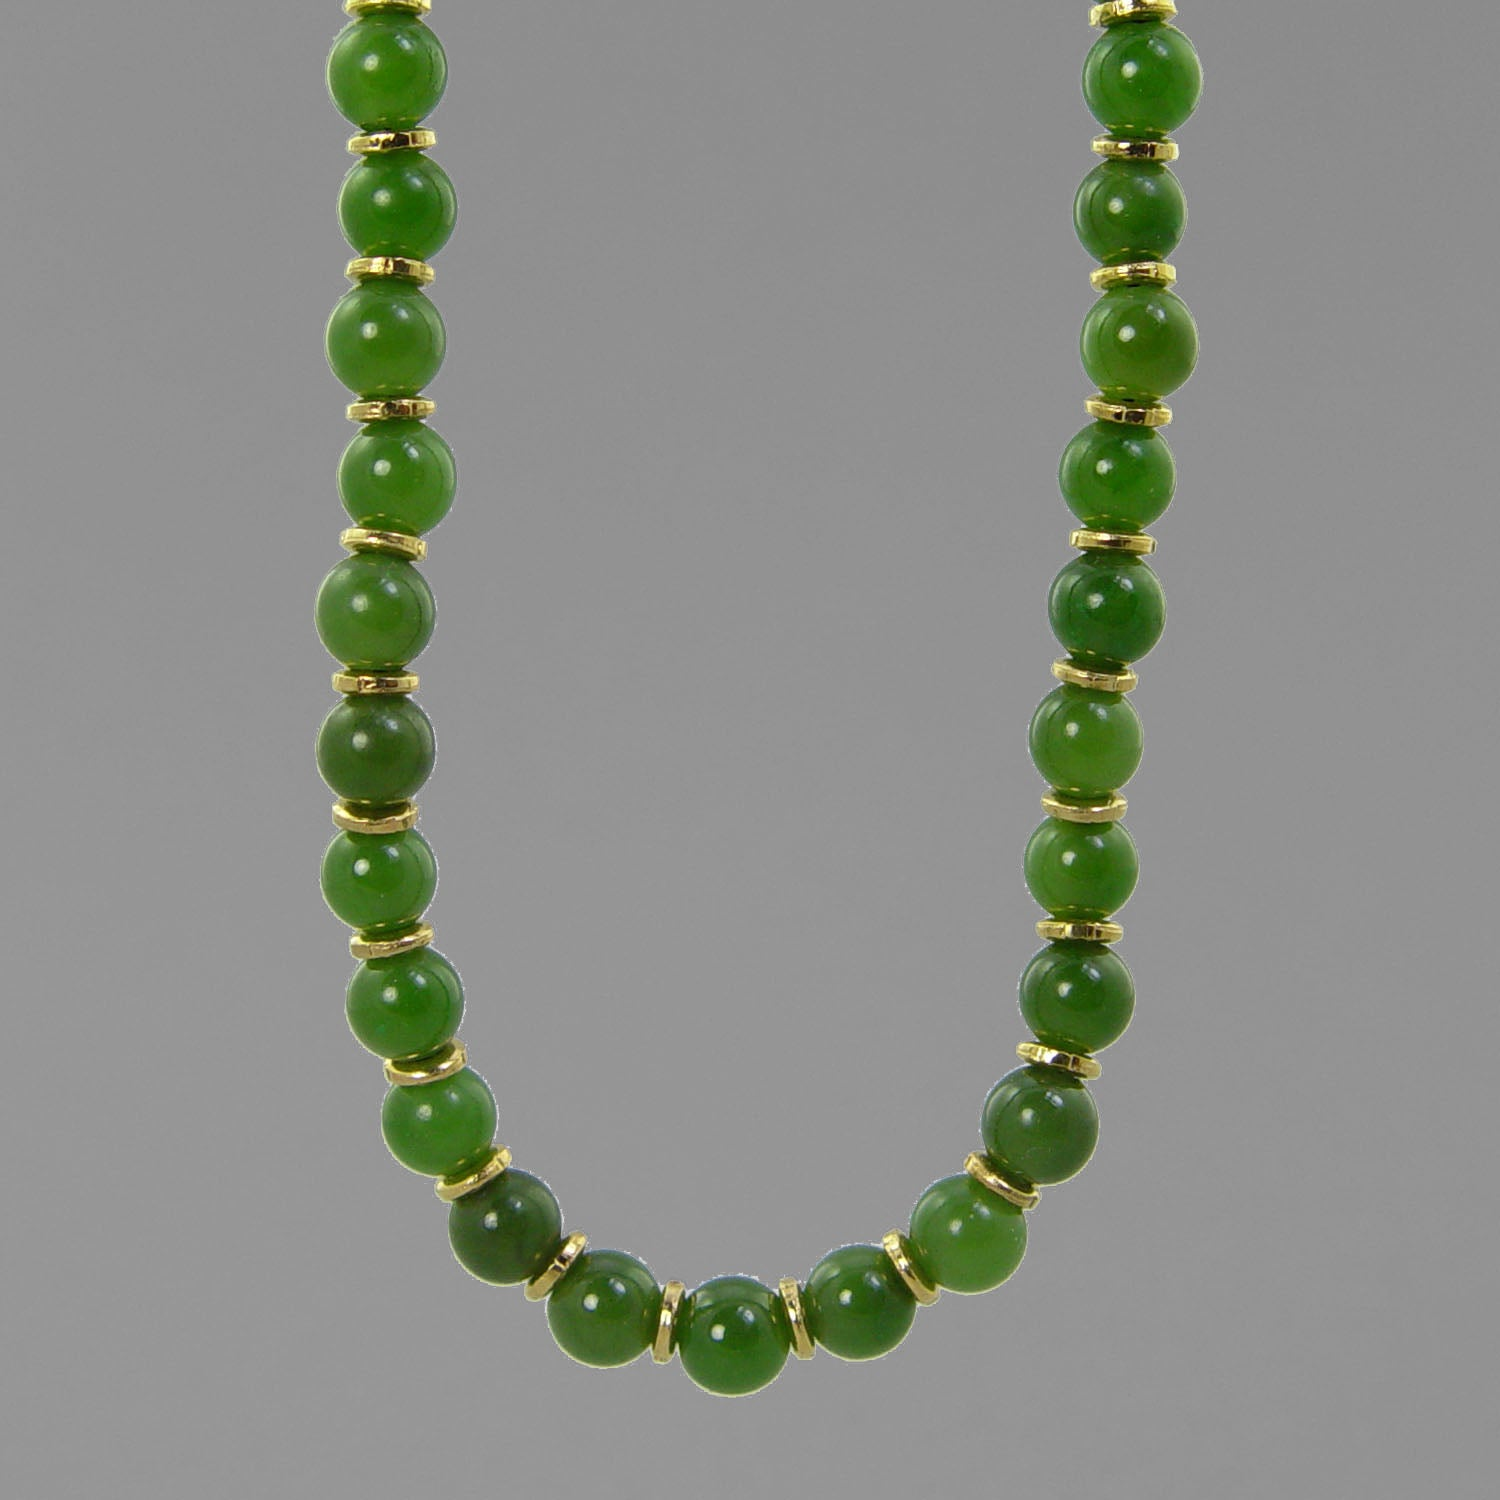 "Jade Round Bead With Accents 16"", 18"", 20"" or 24"" Necklace"